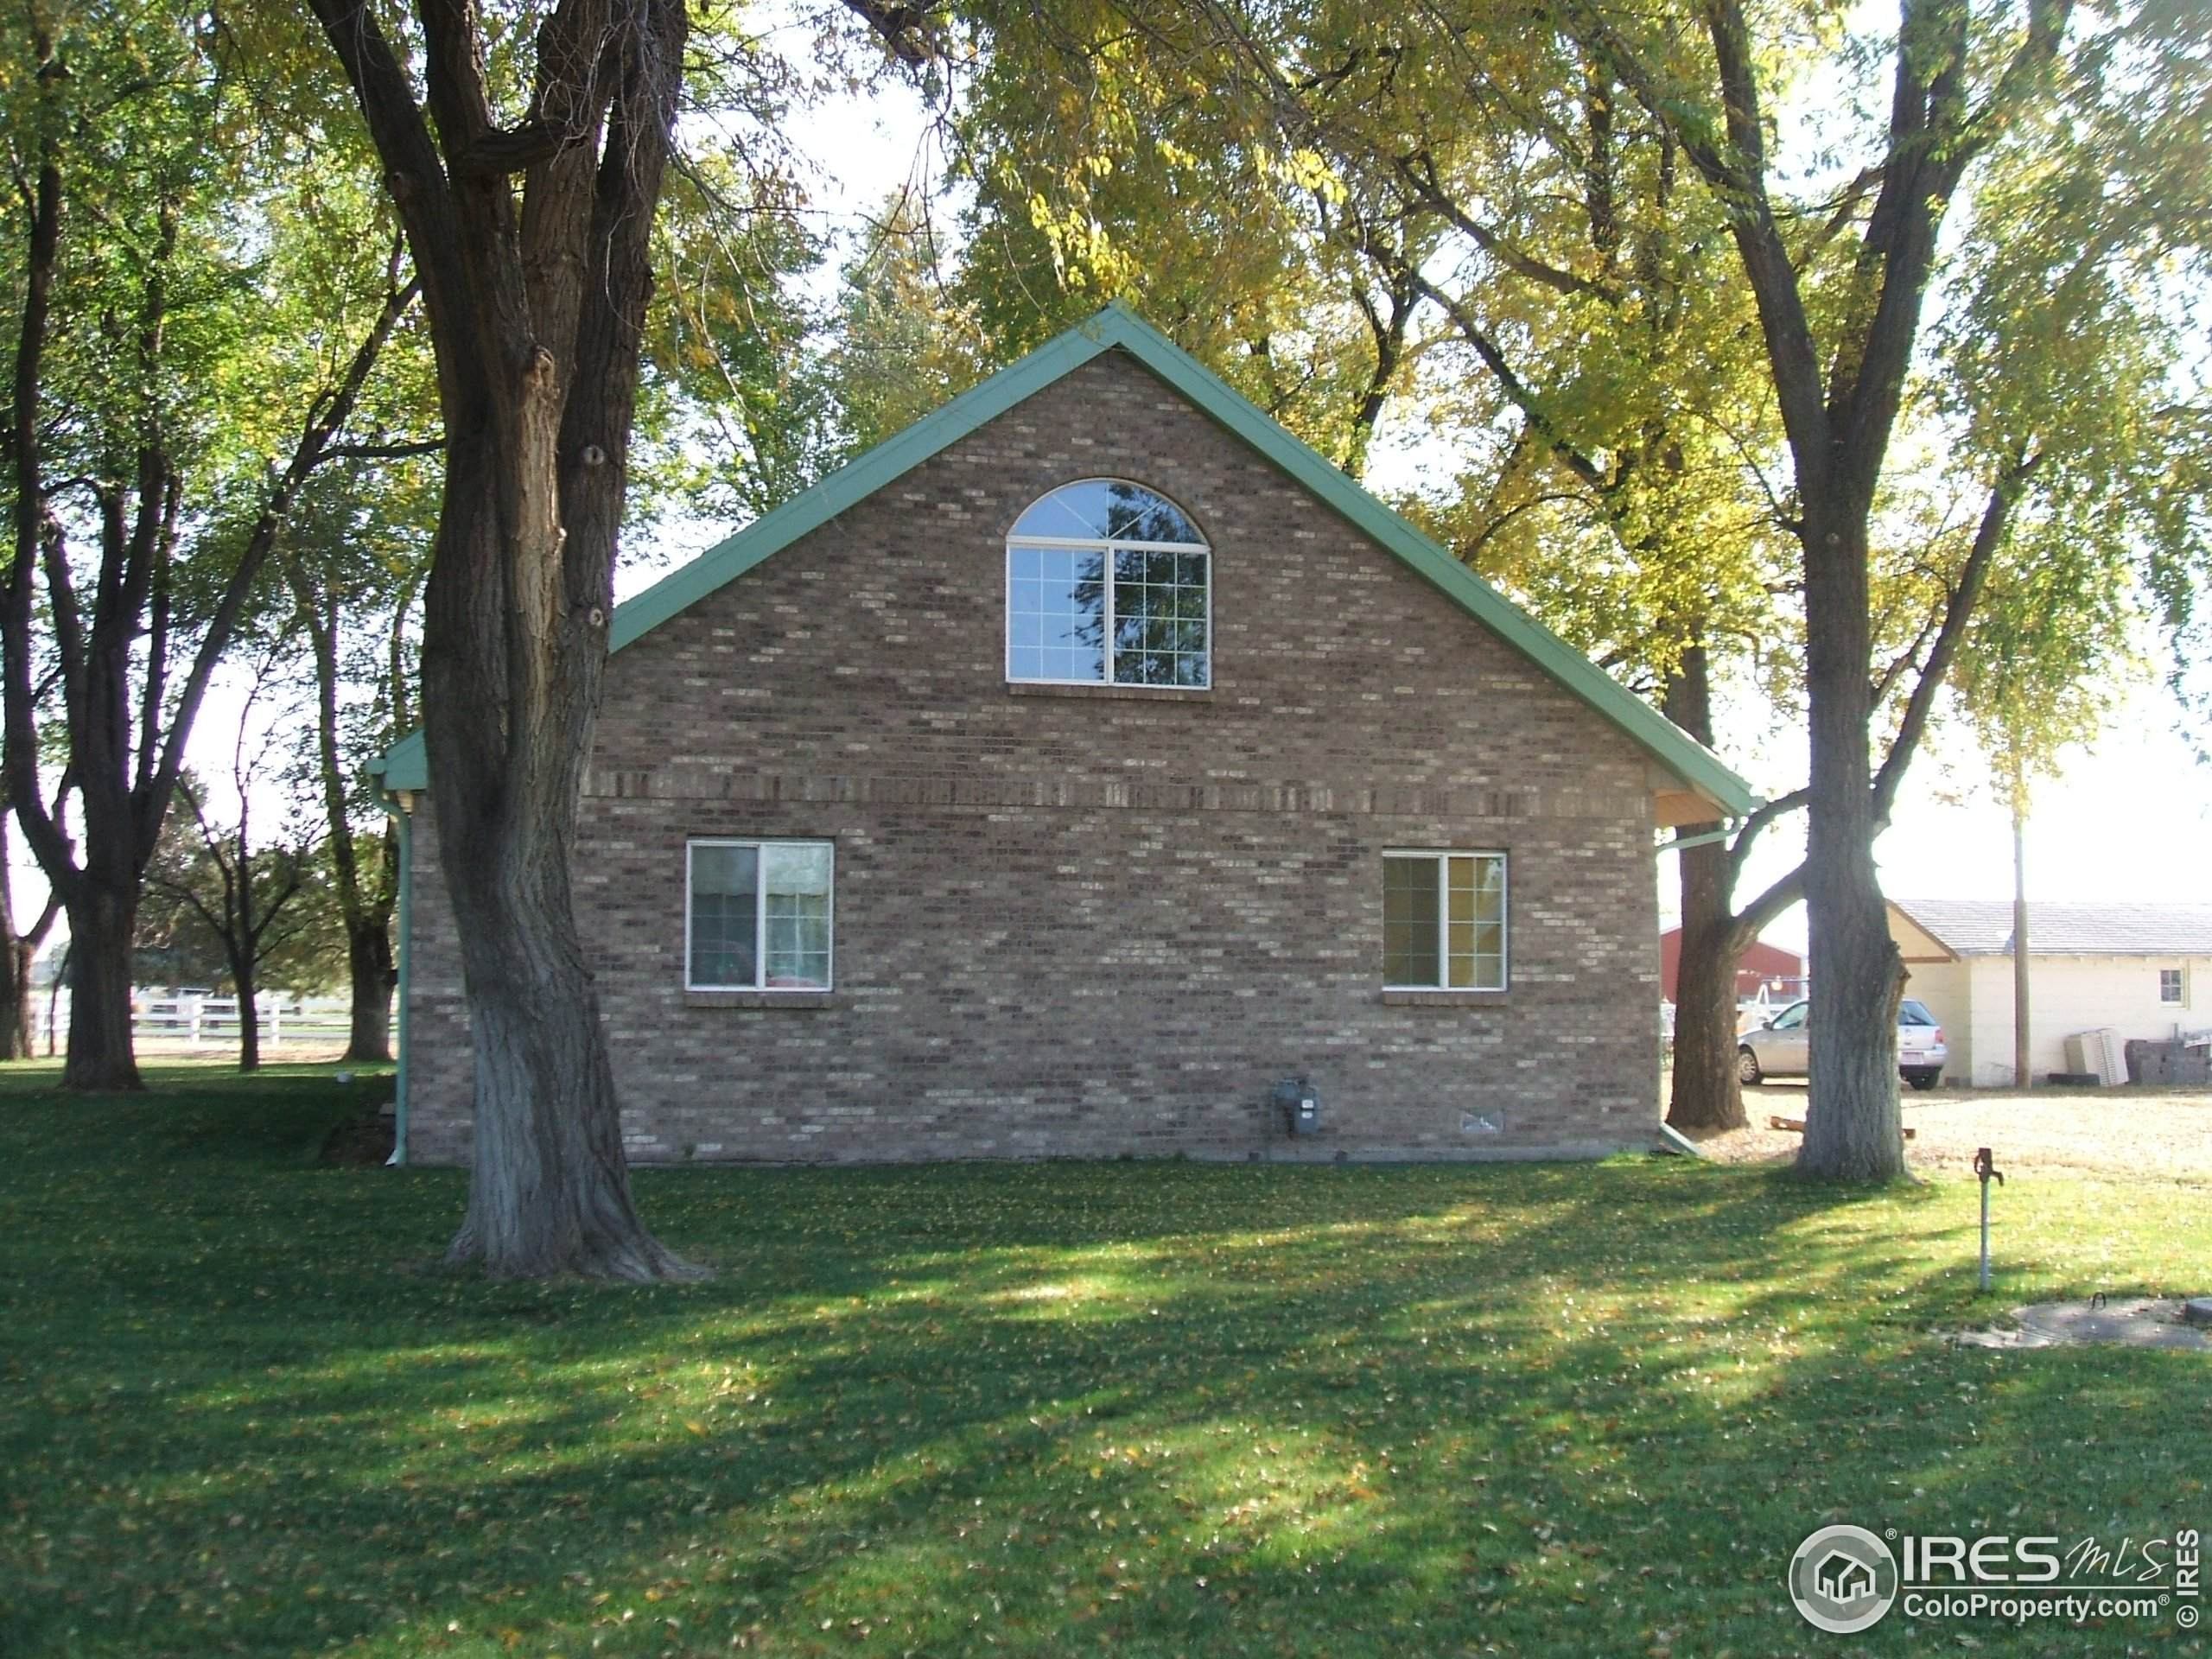 395 4th St, Severance, CO 80550 (MLS #899871) :: June's Team